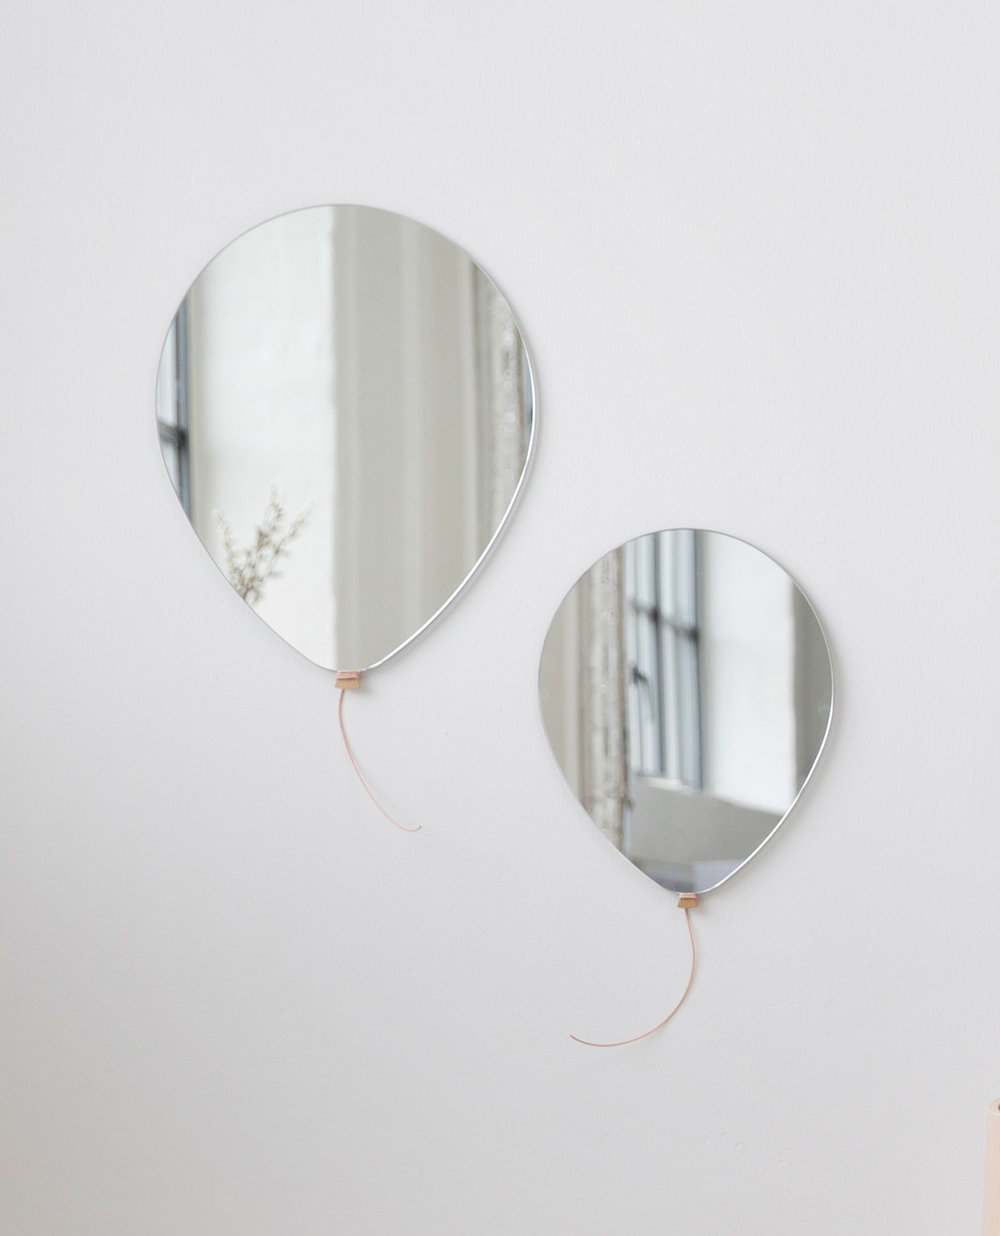 Balloon-mirrors.jpg